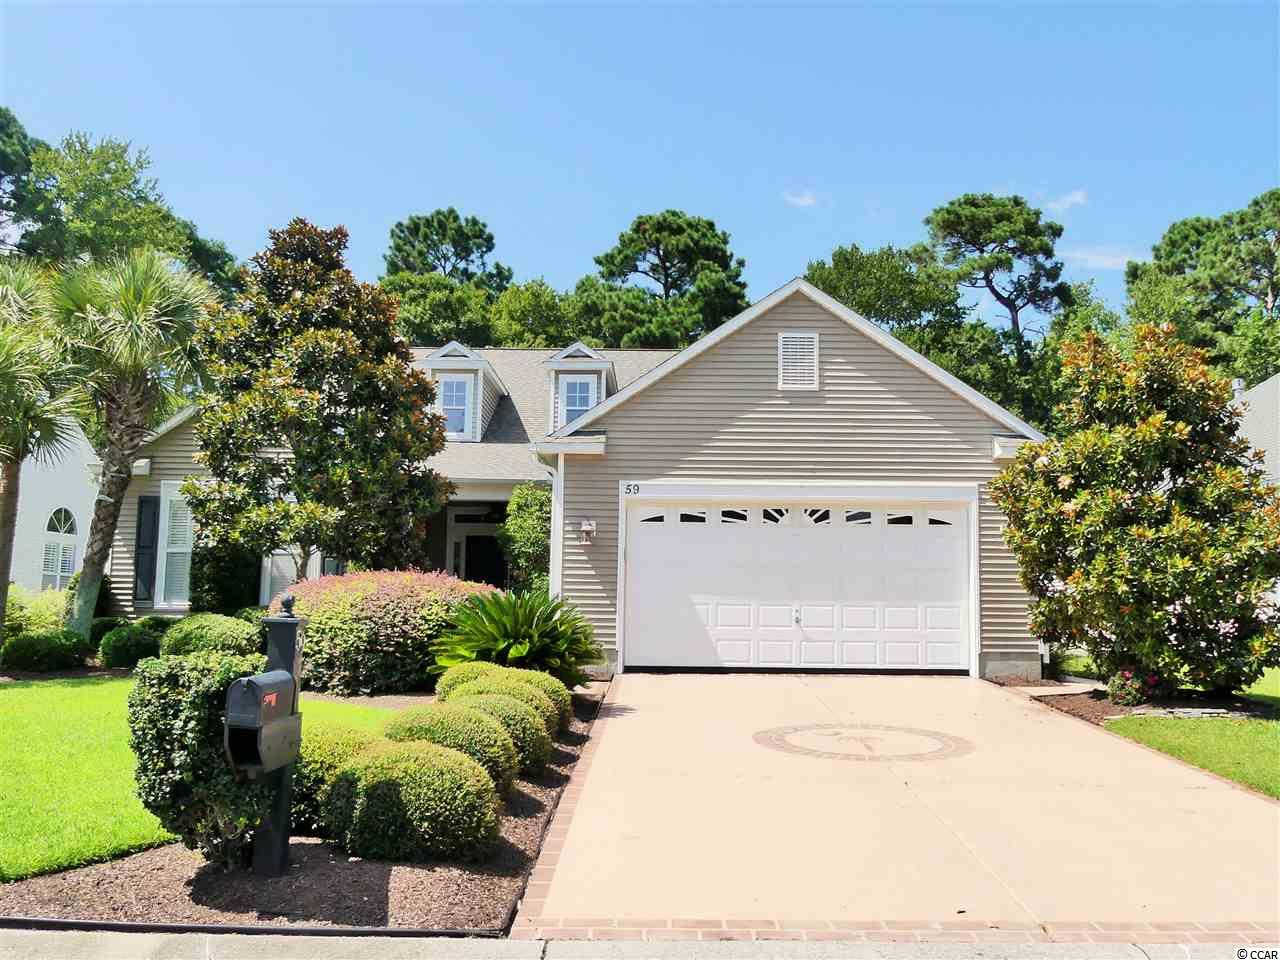 Incredibly well kept home for sale in Murrells Inlet, SC situated along Prince Creek Parkway in one of the area's most sought after developments. 59 Long Creek Drive boasts lush landscaping, almost 3,500 total square feet, a plethora of upgrades, and a flowing open floor plan !